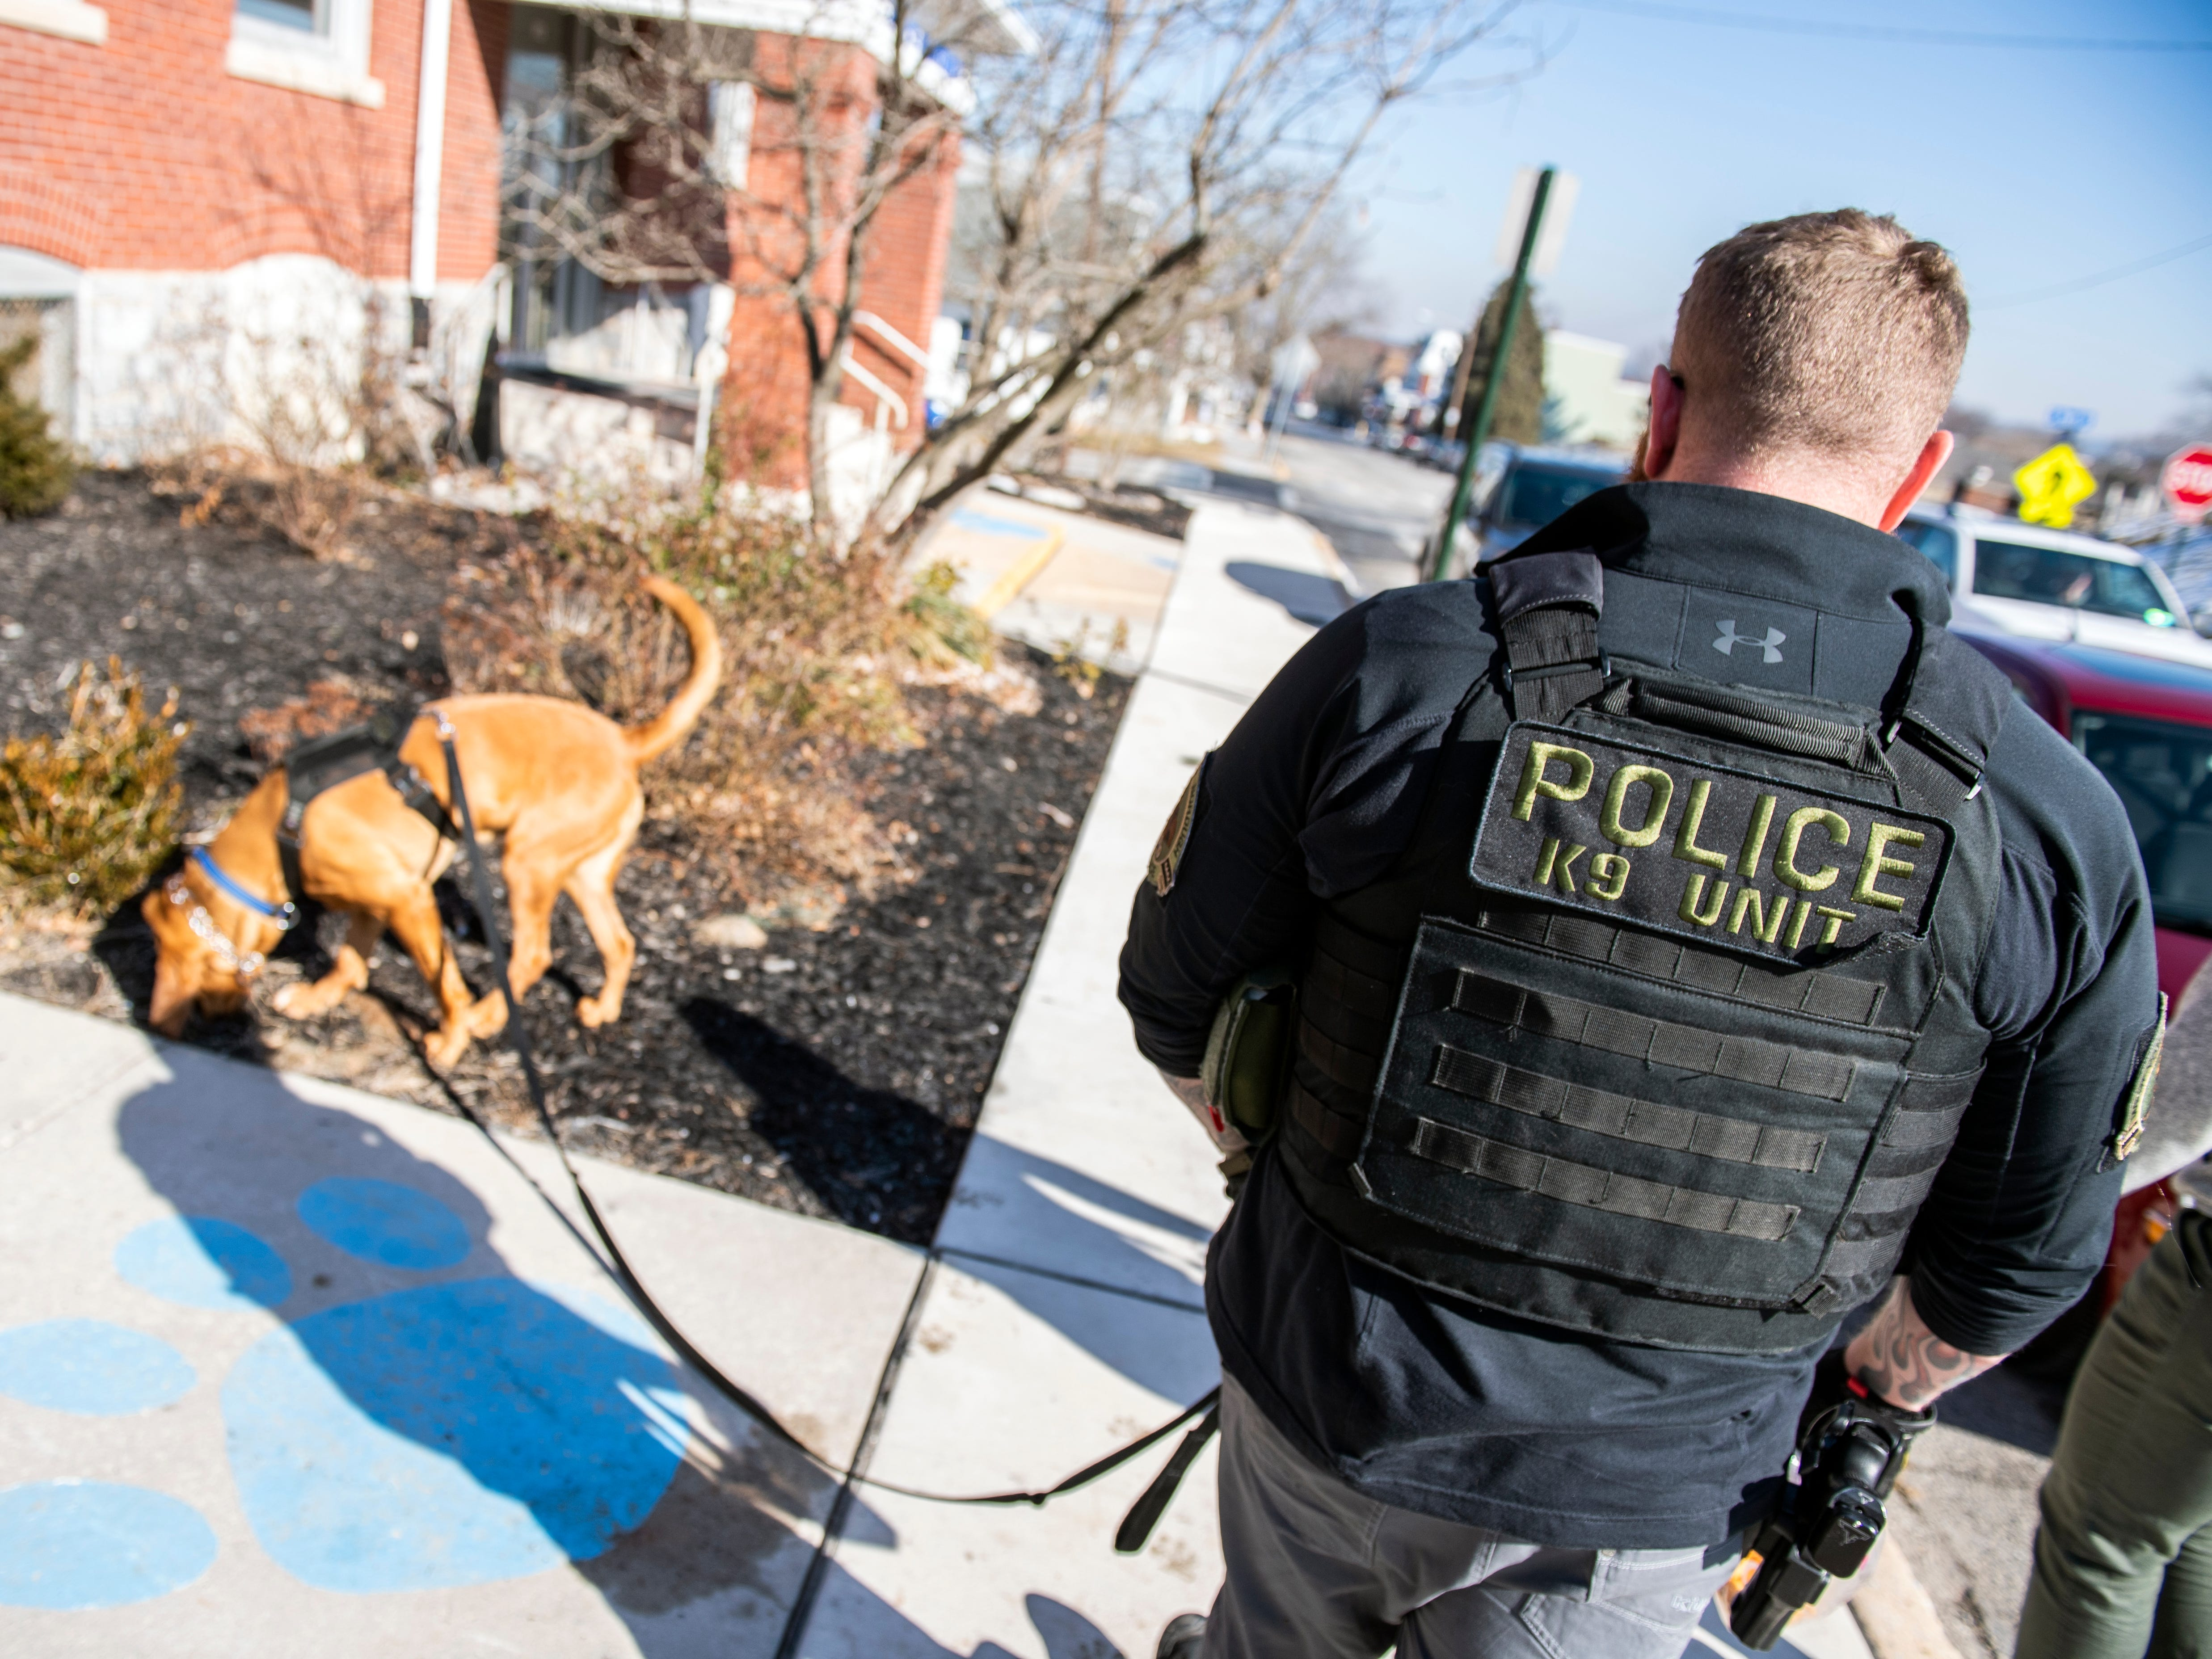 Cpl. Scott Musselman, who handles Det. Prince, always wanted to be a K-9 handler and says that he wouldn't want any other dog, after working with Prince for the past year through trainings and criminal investigations.